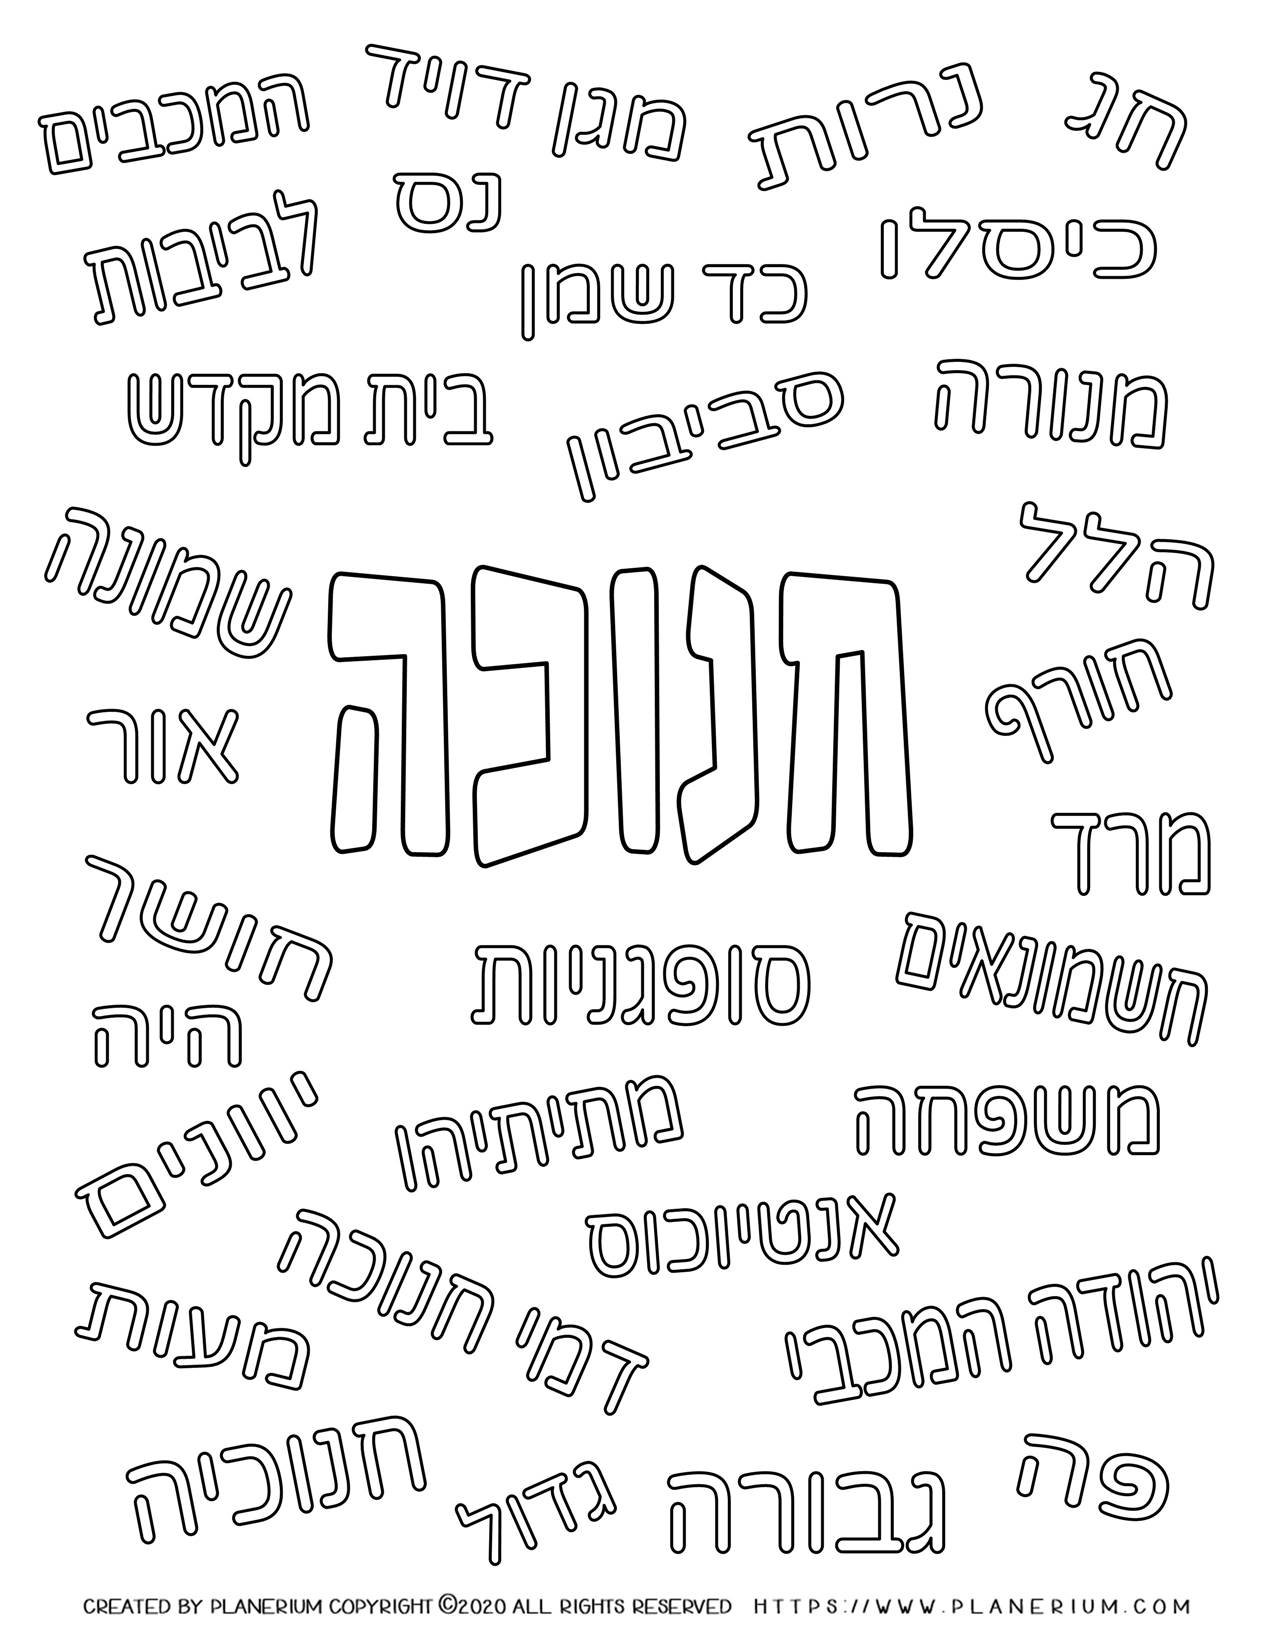 Hanukkah Coloring Page - Related Words - Hebrew - Free Printable | Planerium